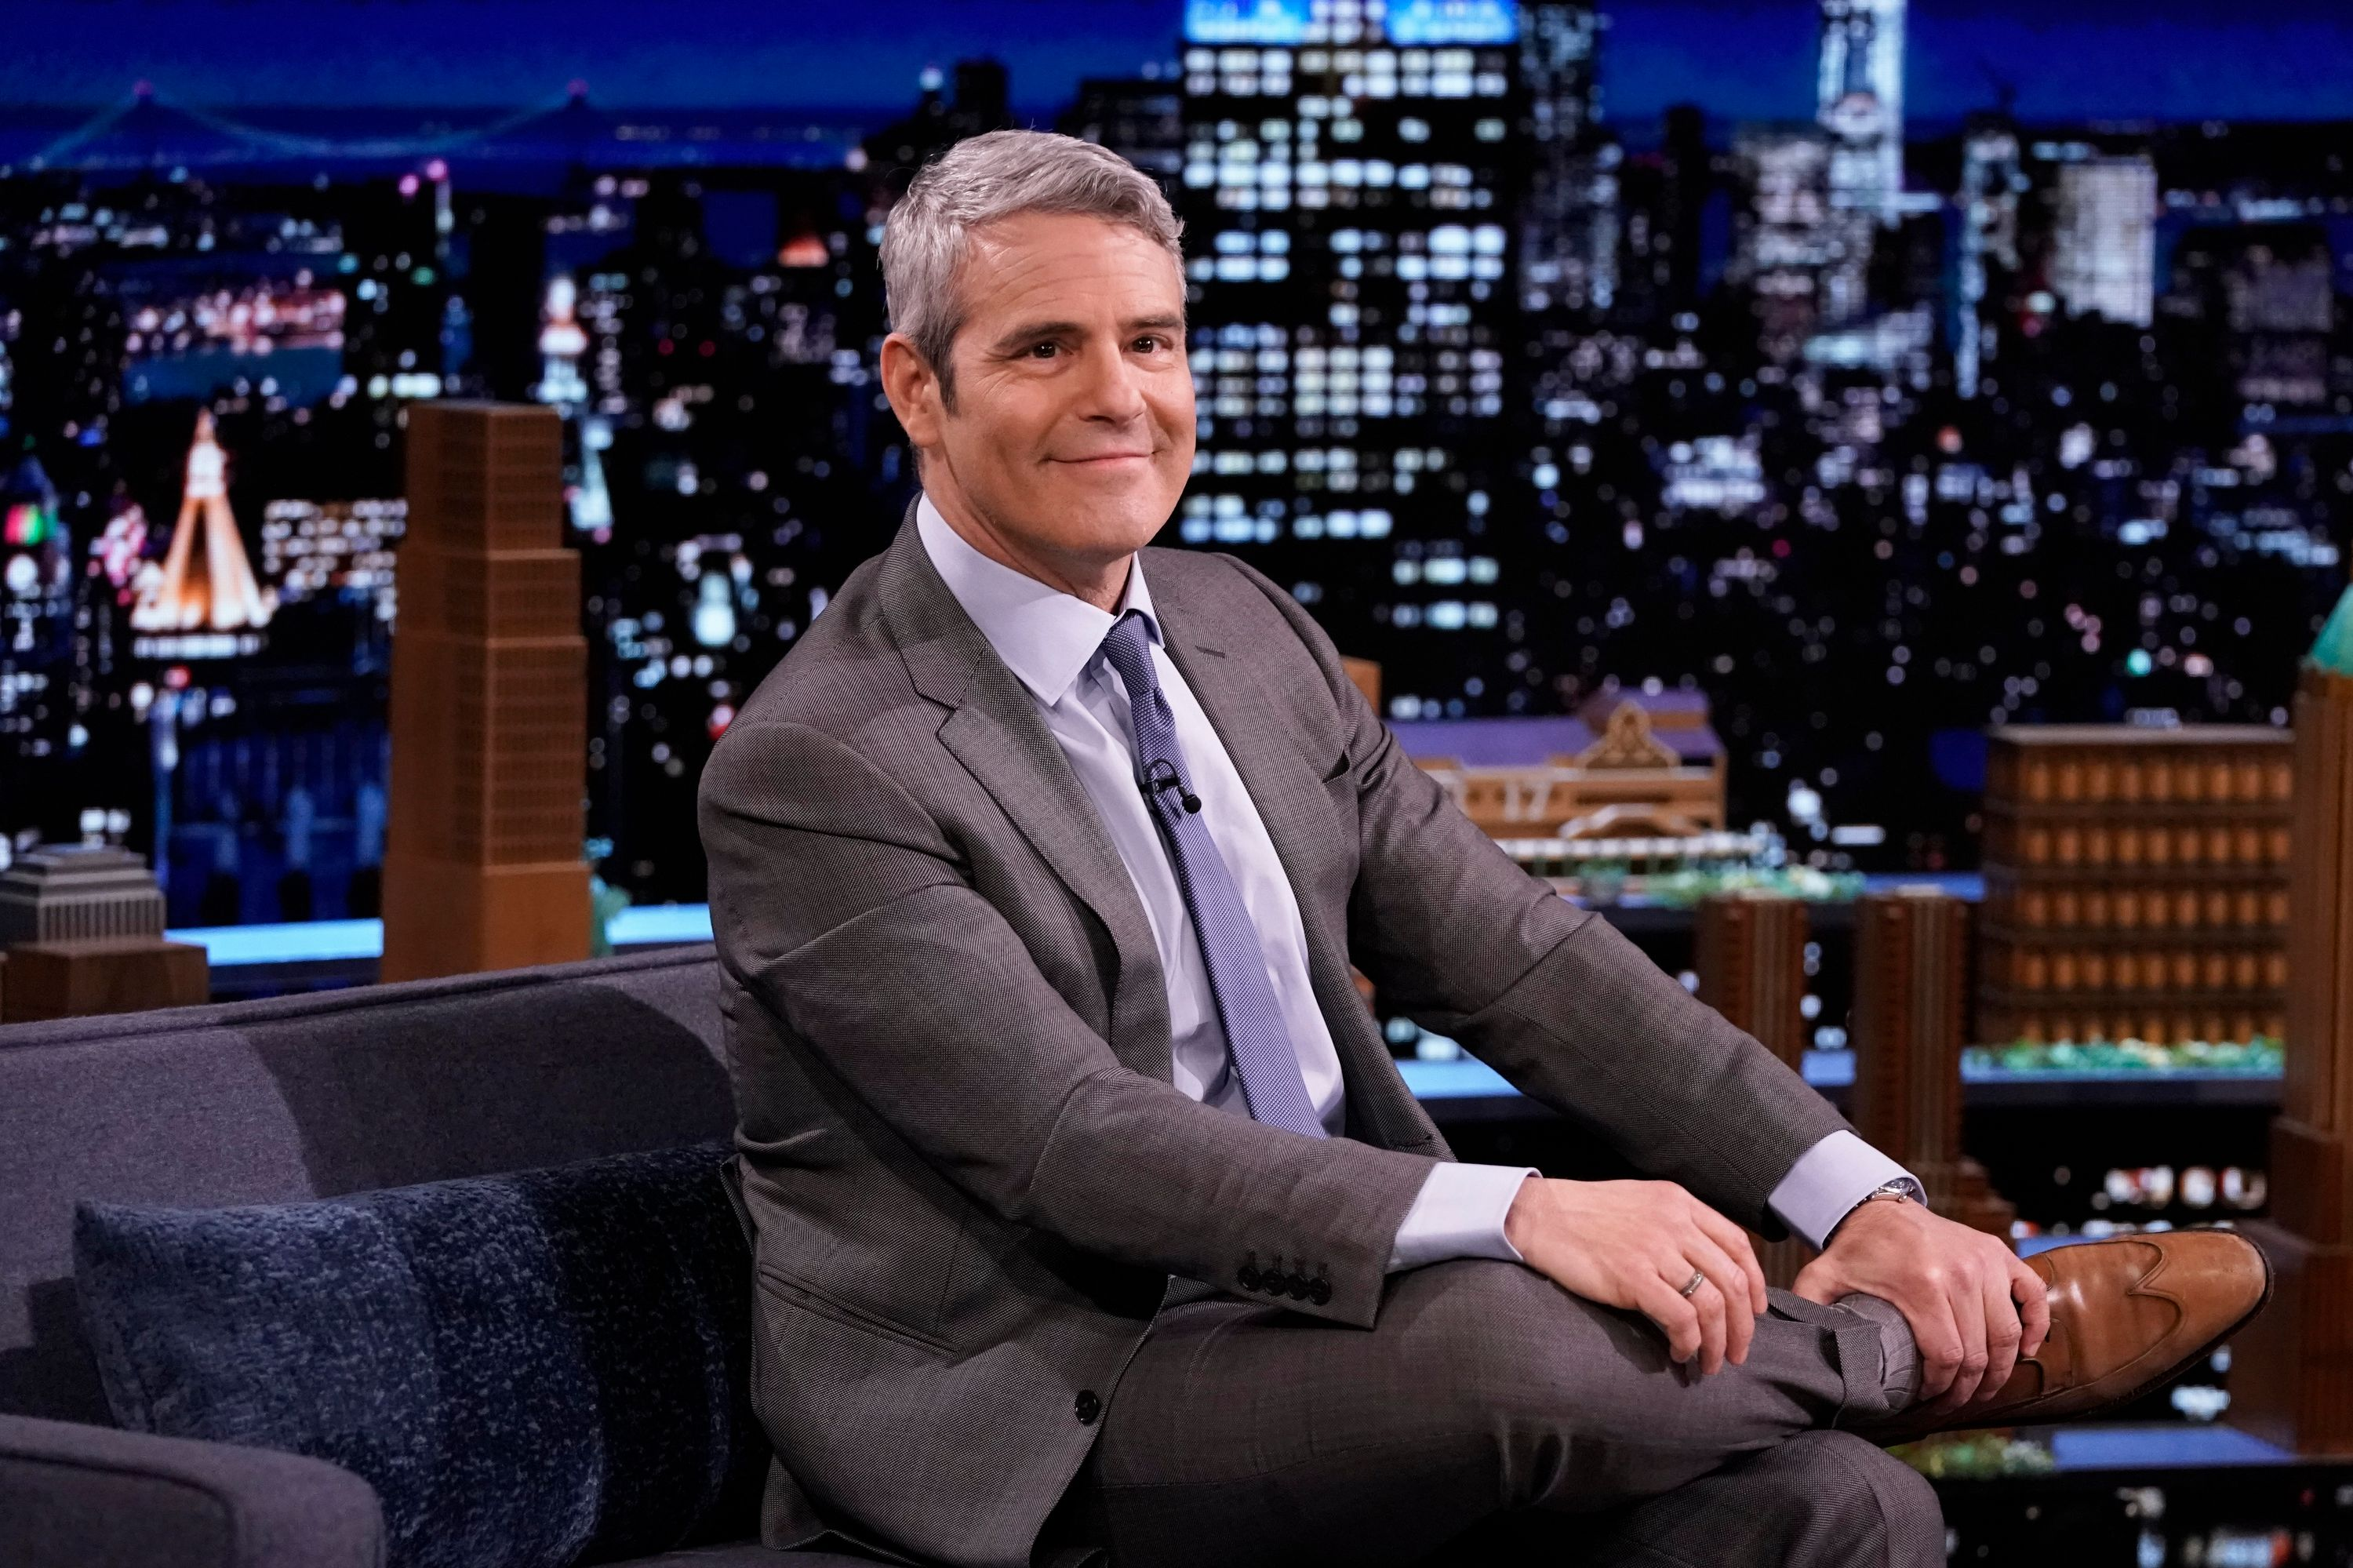 """Andy Cohen during an interview on """"The Tonight Show Starring Jimmy Fallon"""" on March 22, 2021 